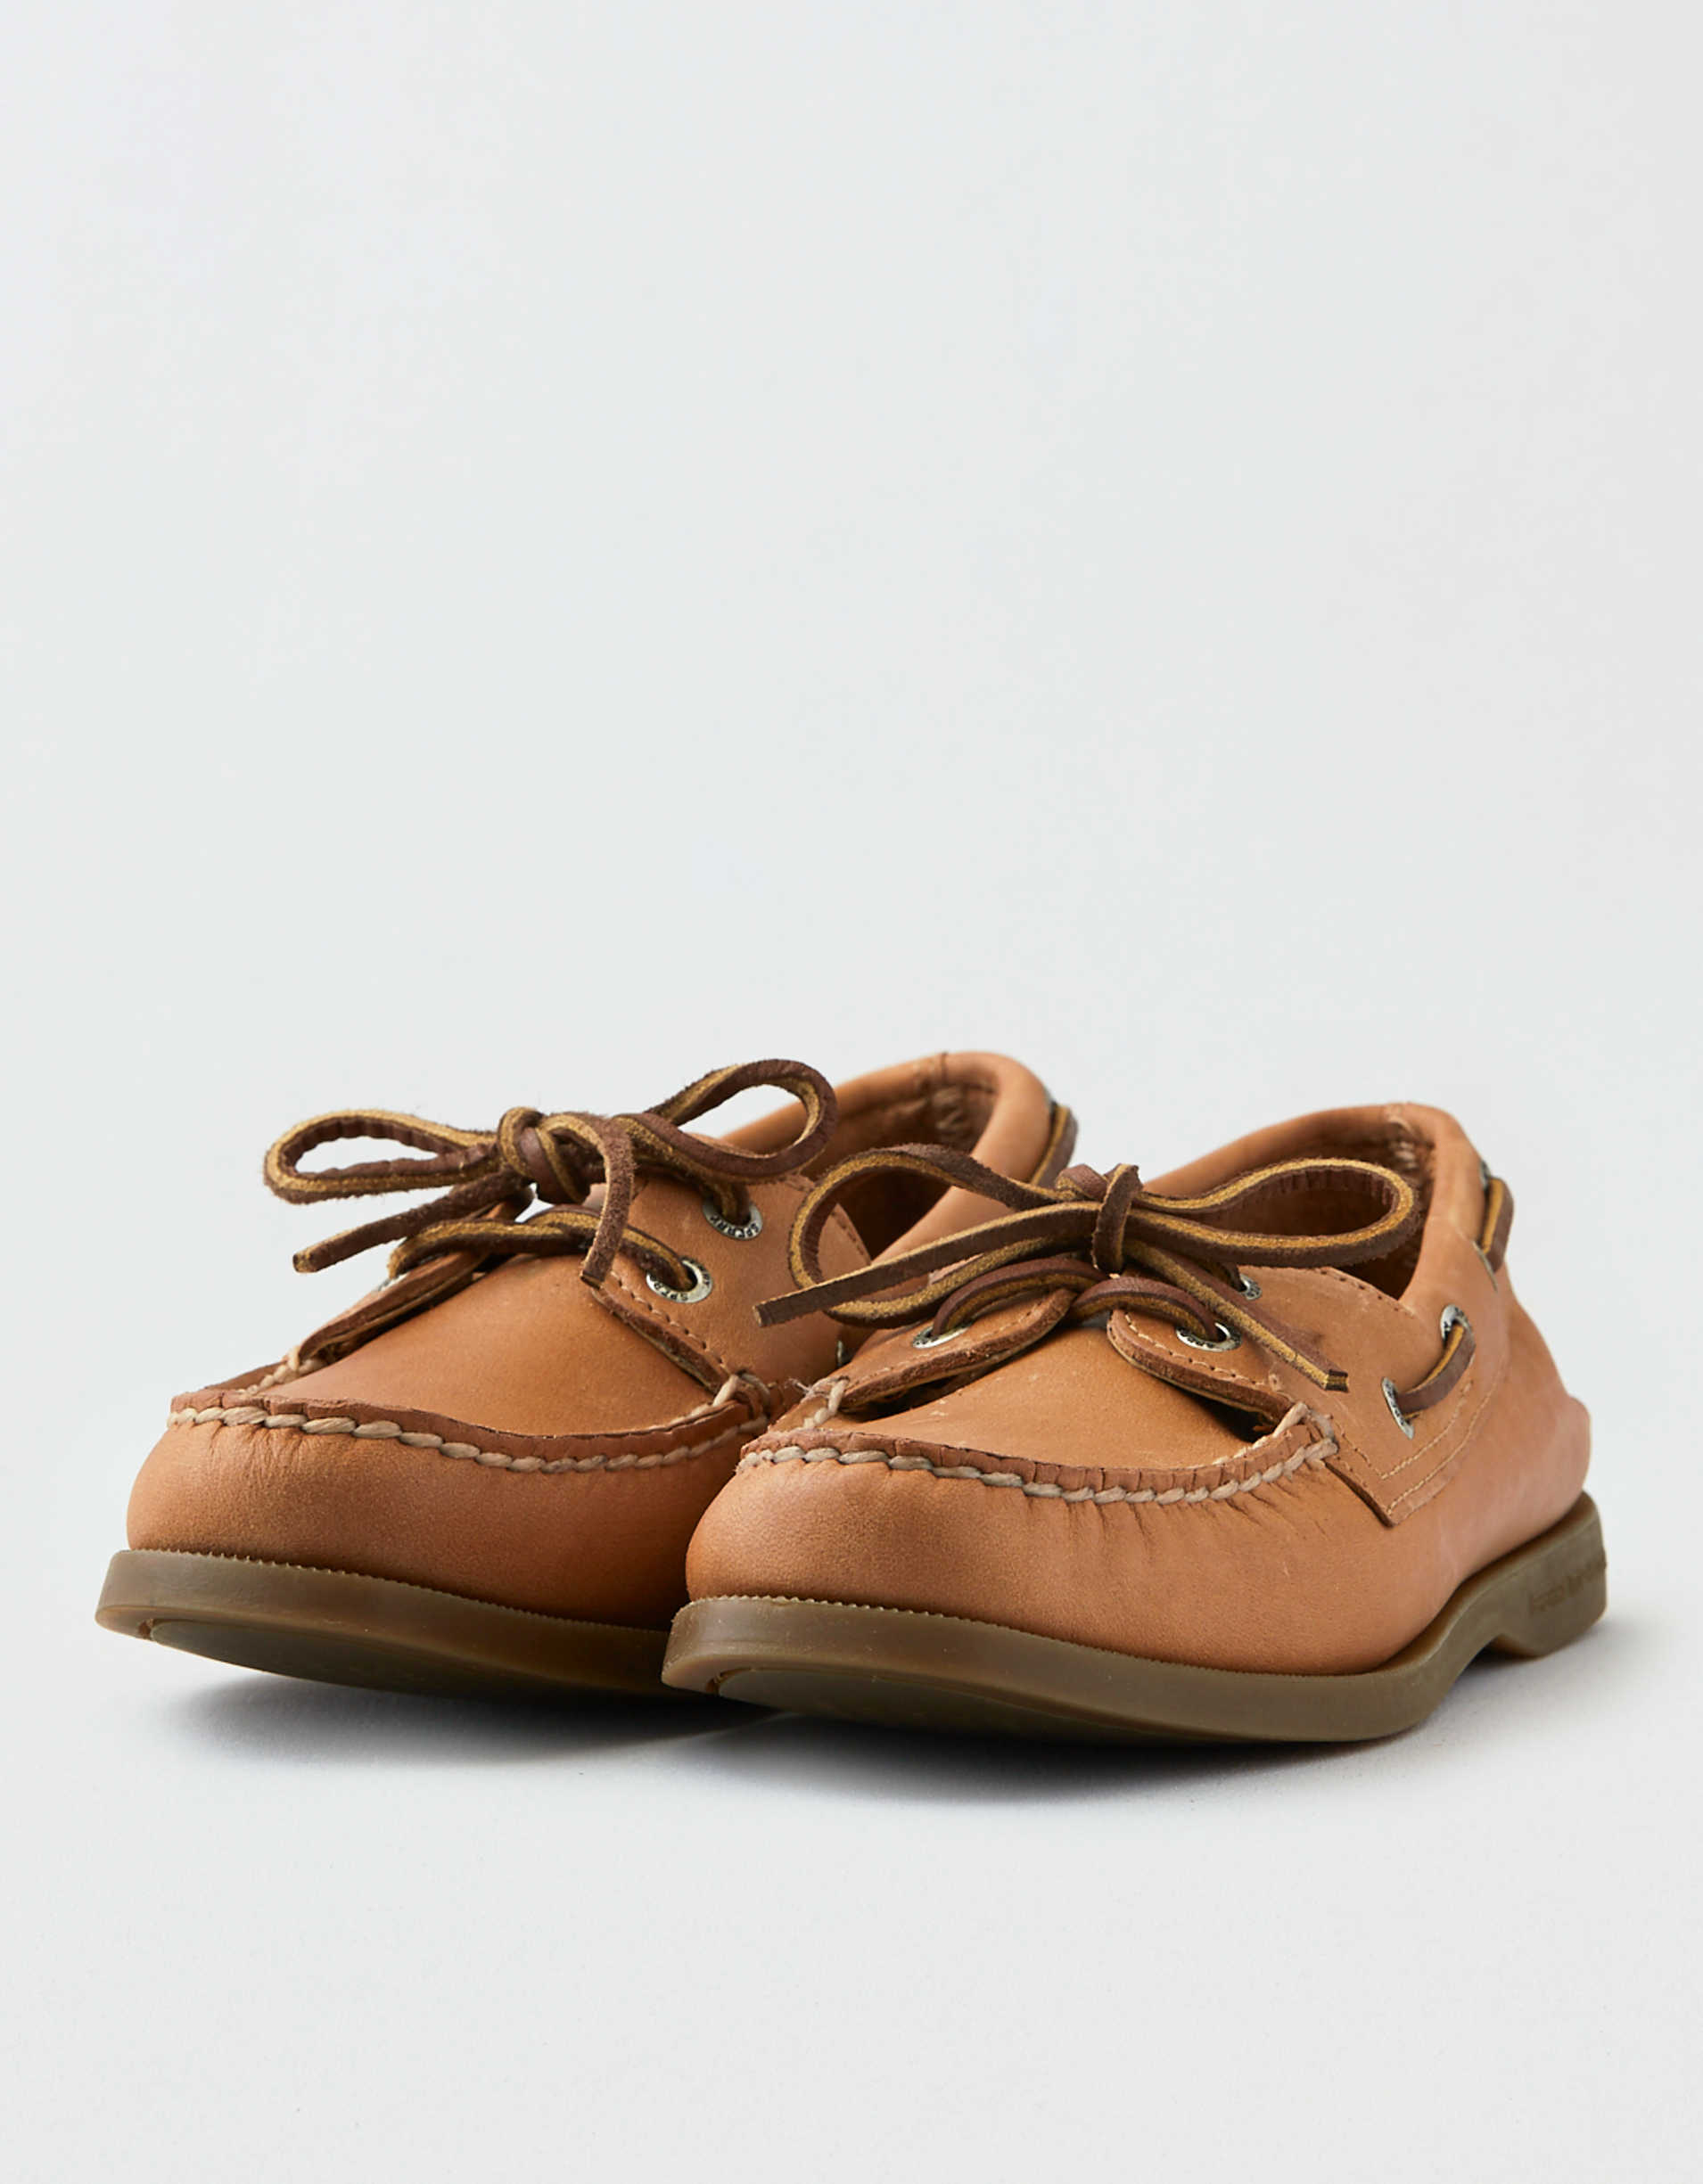 Sperry A/O 2 Eye Boat Shoe